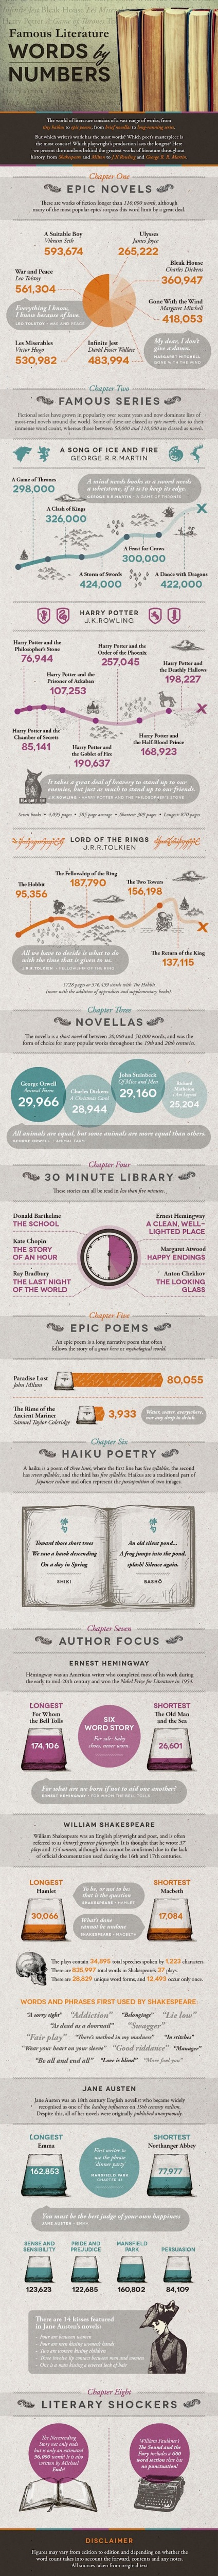 Famous-books-by-the-numbers-full-size-infographic